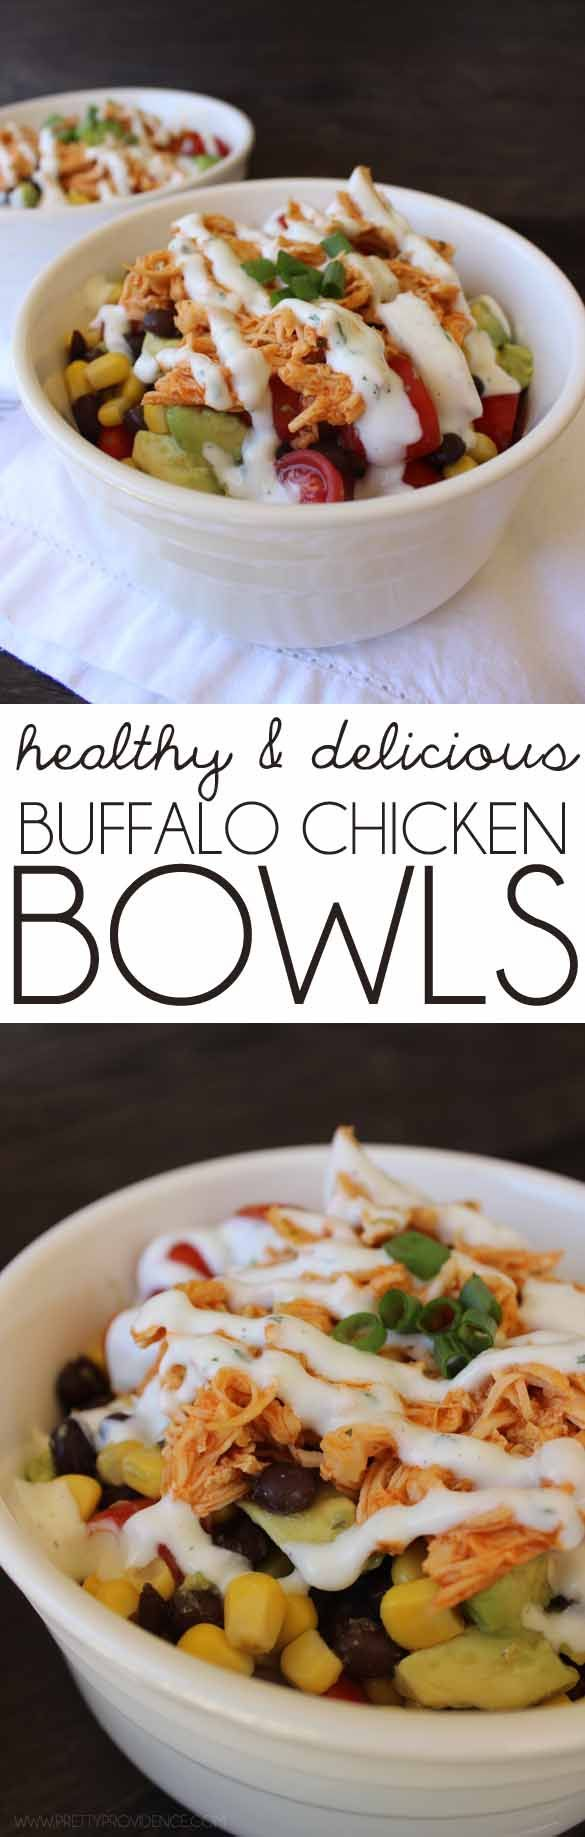 I literally eat this recipe twice a week since I've started my healthy lifestyle! These healthy buffalo chicken bowls are to die for good!